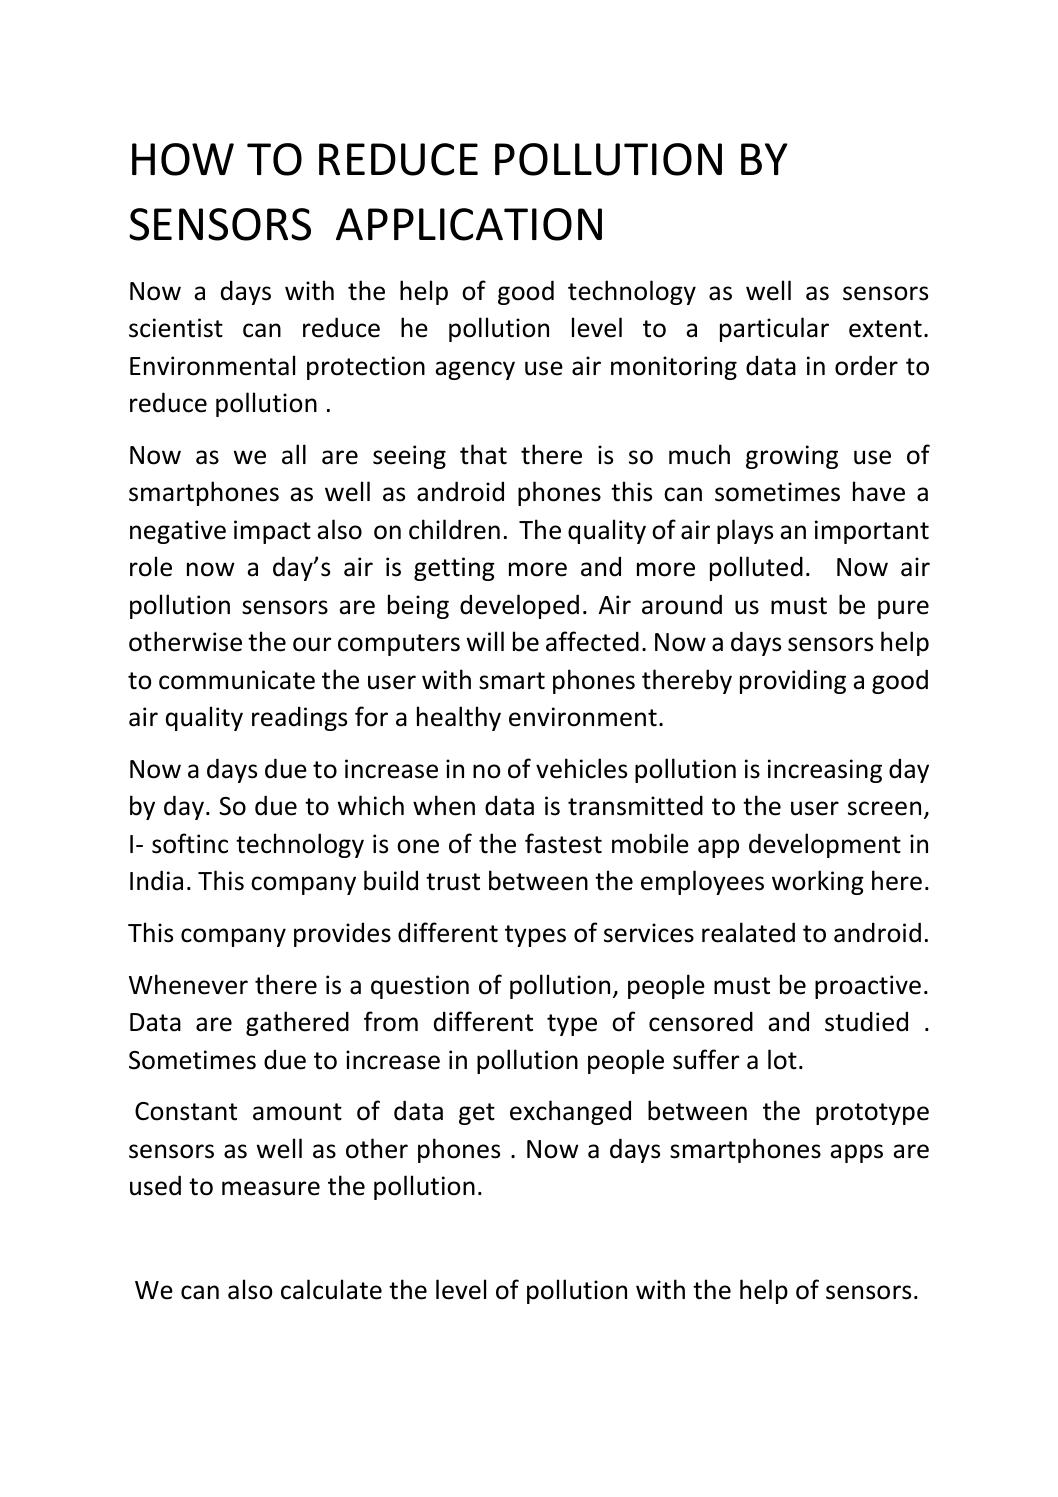 How To Reduse Pollution How To Reduce Pollution By Sensors Application By I Softinc Issuu